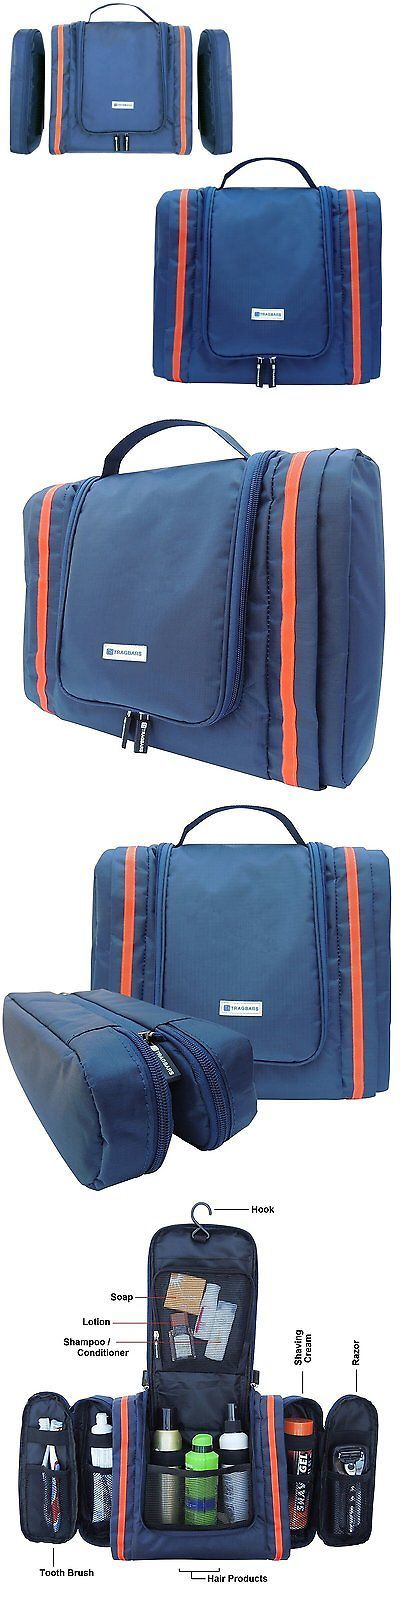 Other Travel Accessories 93839: Tragbars 3 In 1 Large Toiletry Bag Detachable For Men And Women Toiletry Travel -> BUY IT NOW ONLY: $42.63 on eBay!